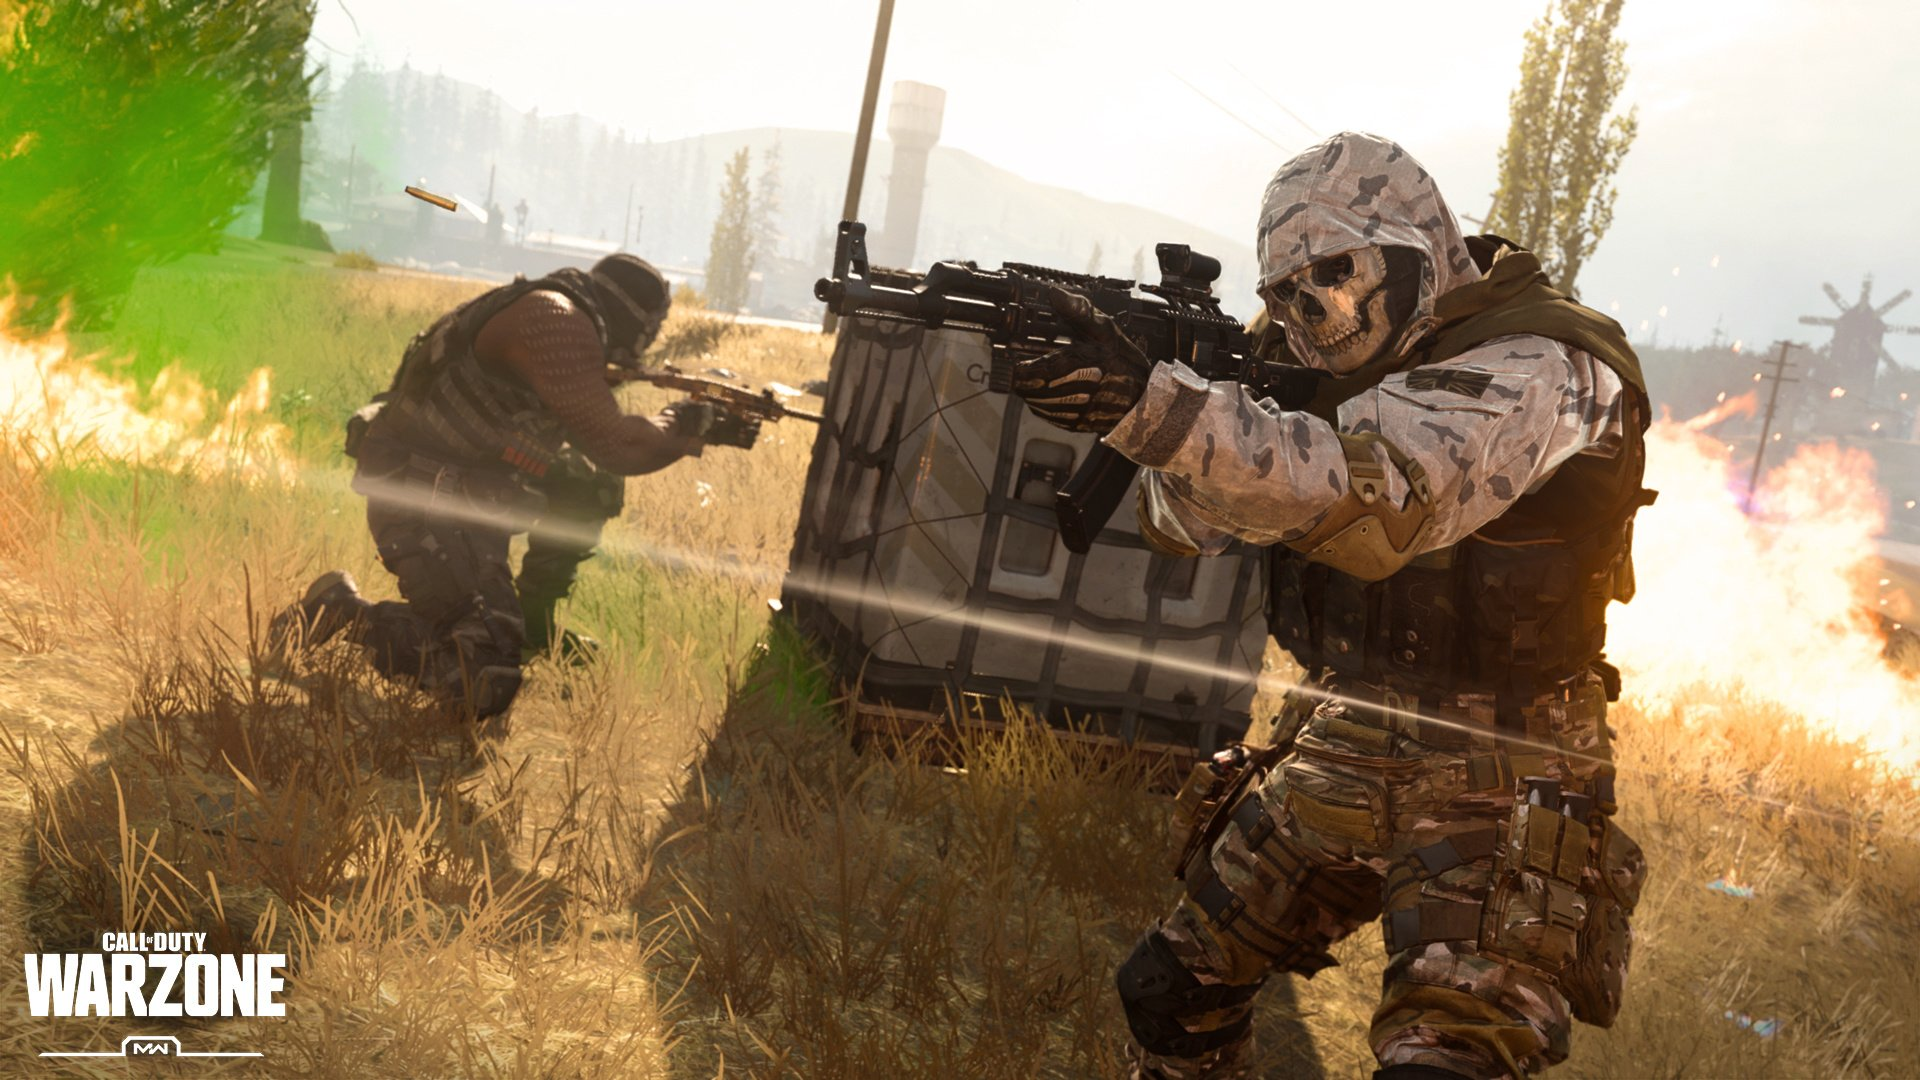 Call of Duty: Modern Warfare Adds New Multiplayer Maps